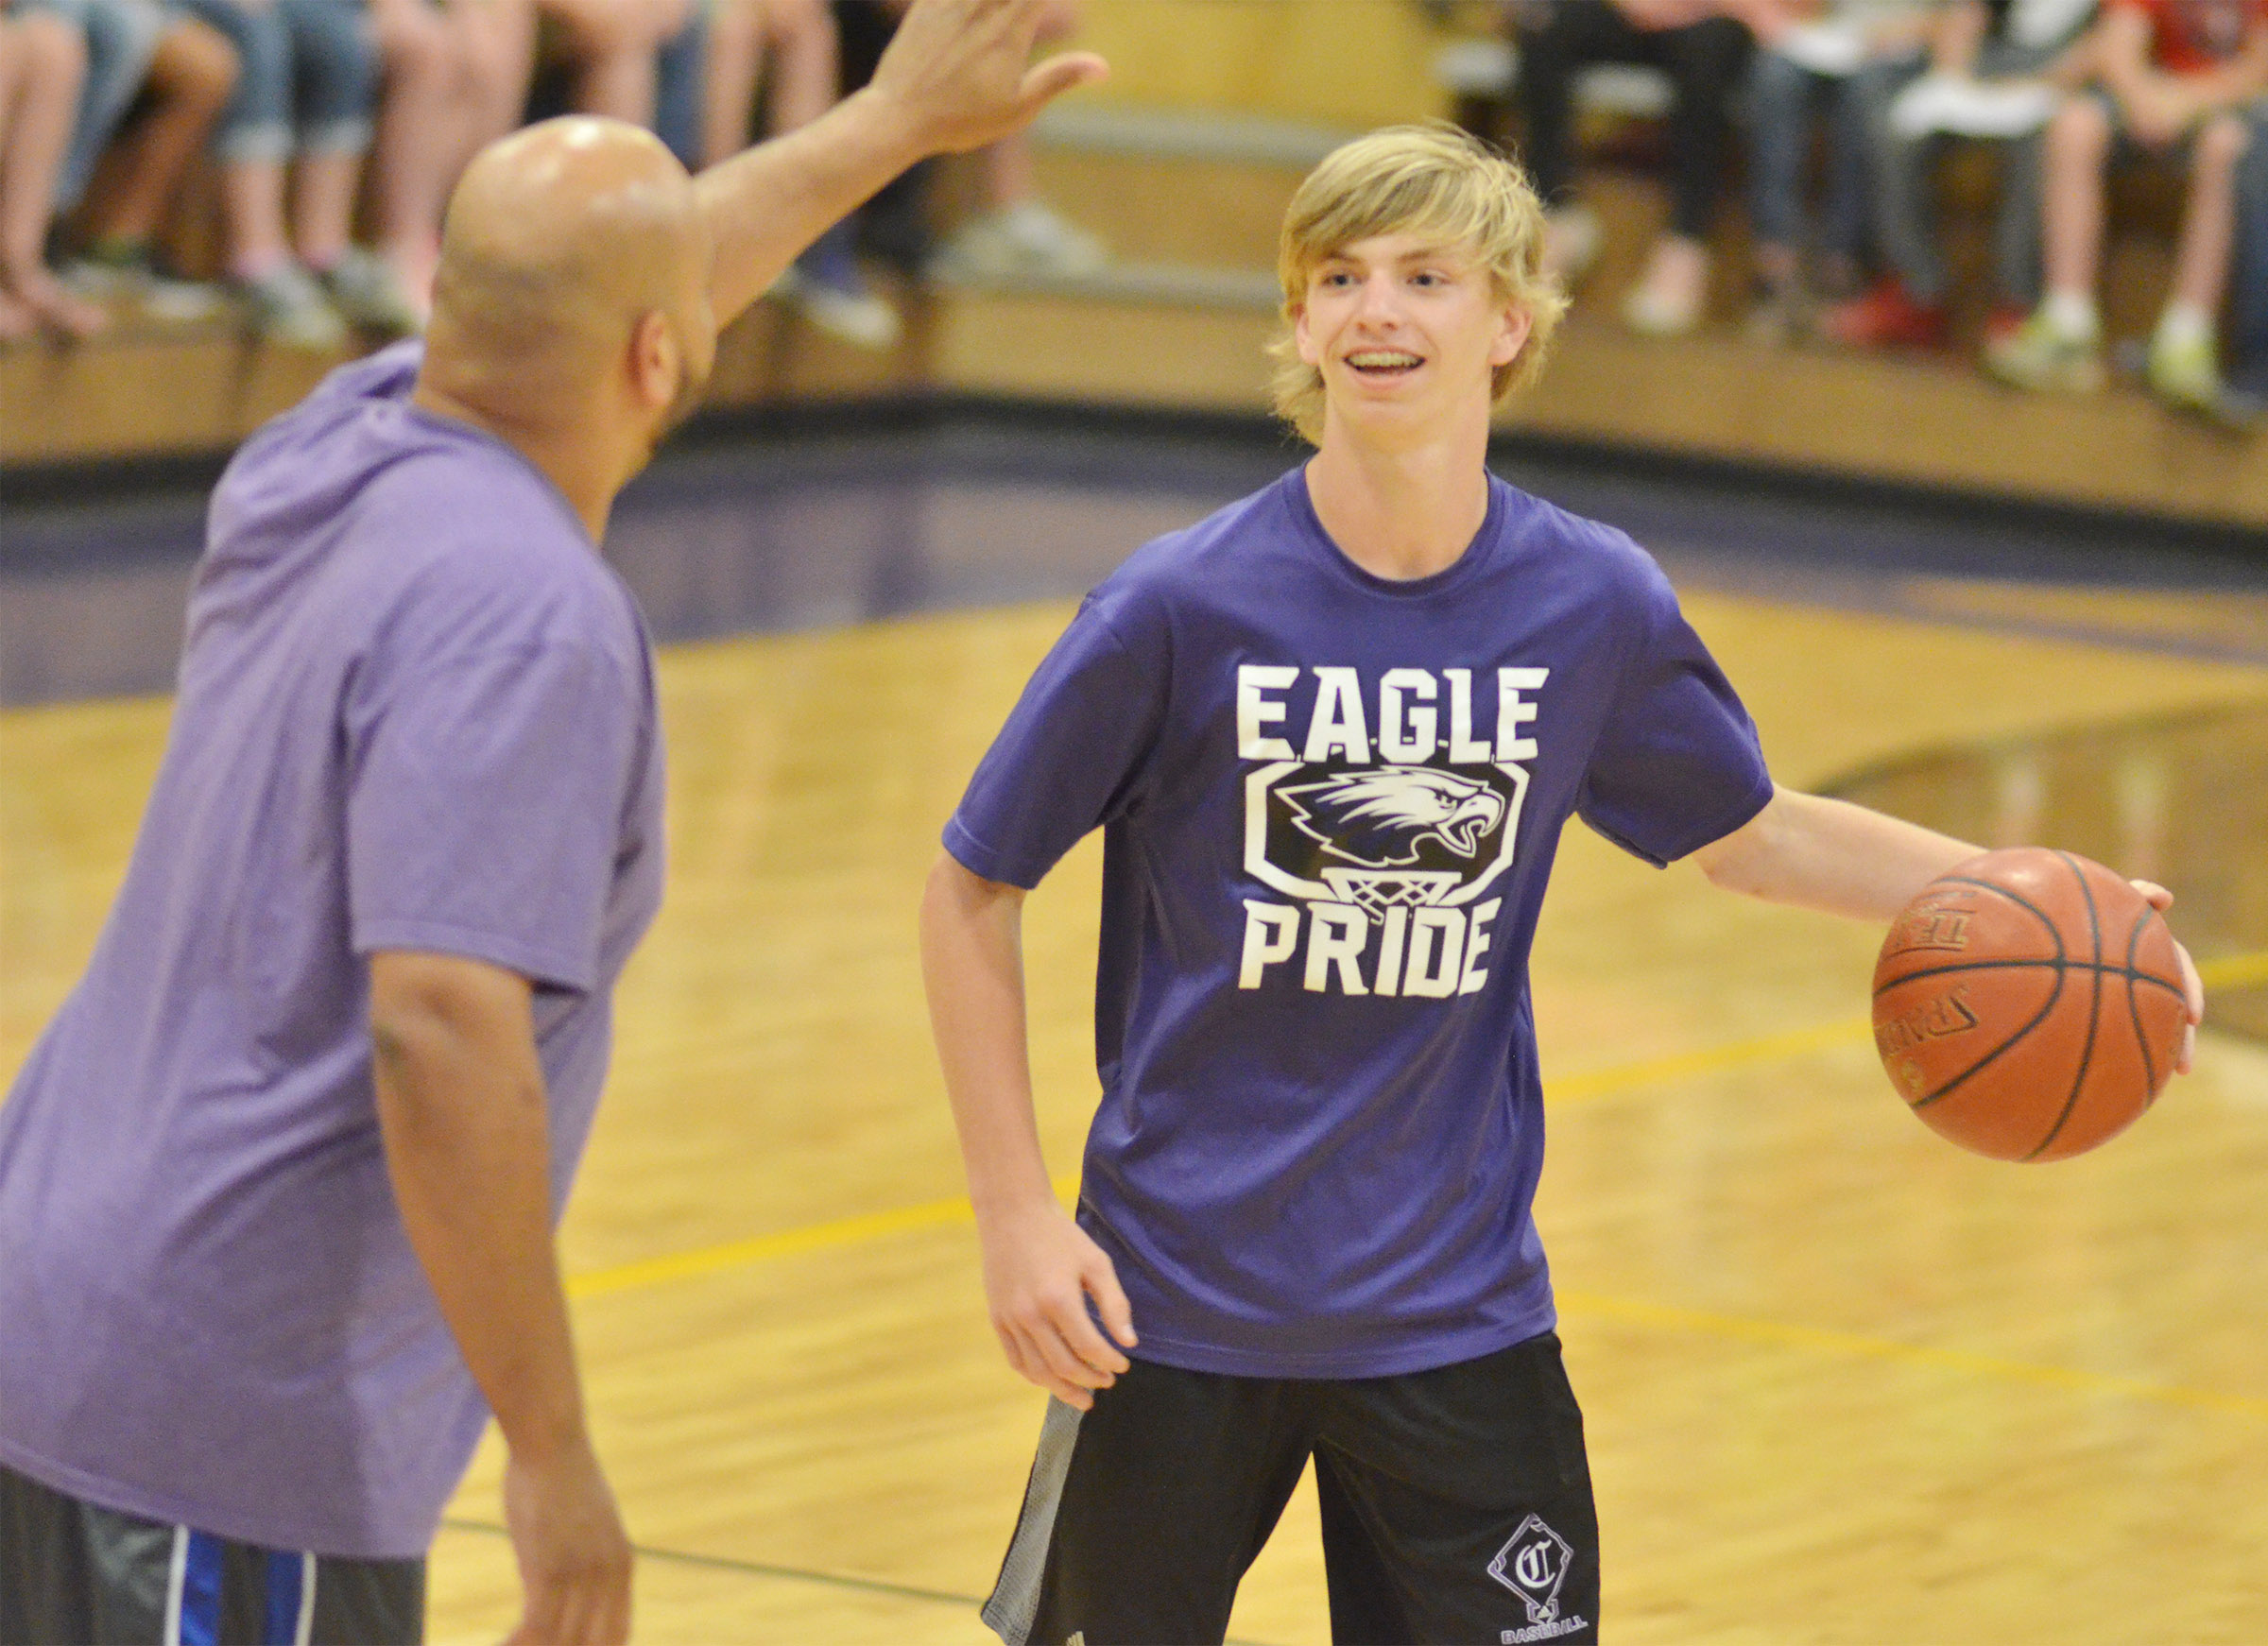 CMS eighth-grader Arren Hash dribbles as Campbellsville Elementary School cafeteria worker Aaron Webb guards him.